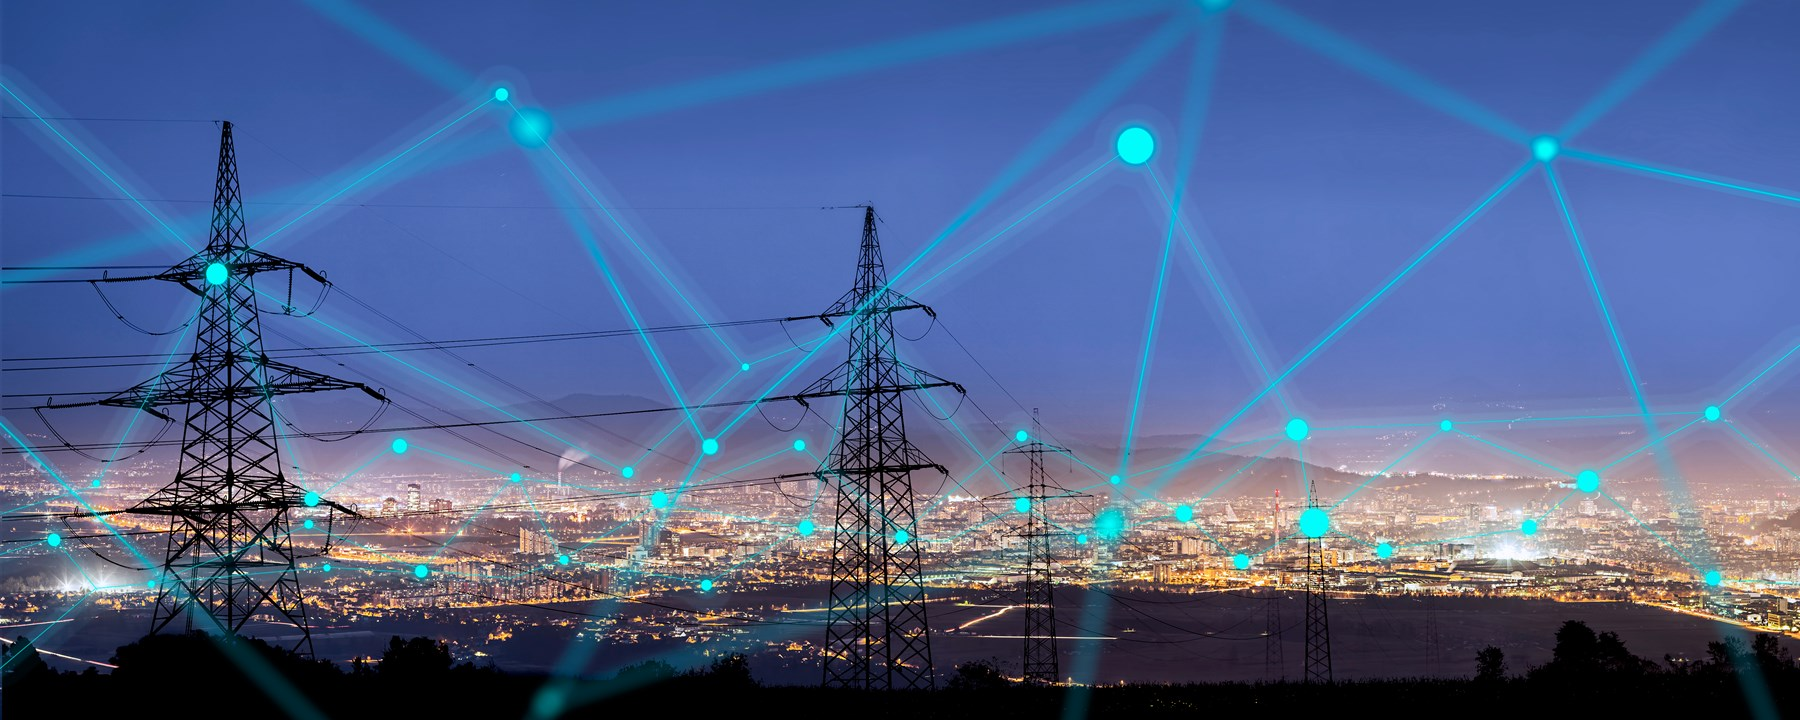 Transforming Emergency Planning into an Evolving Resilience Plan for UK Utility Company